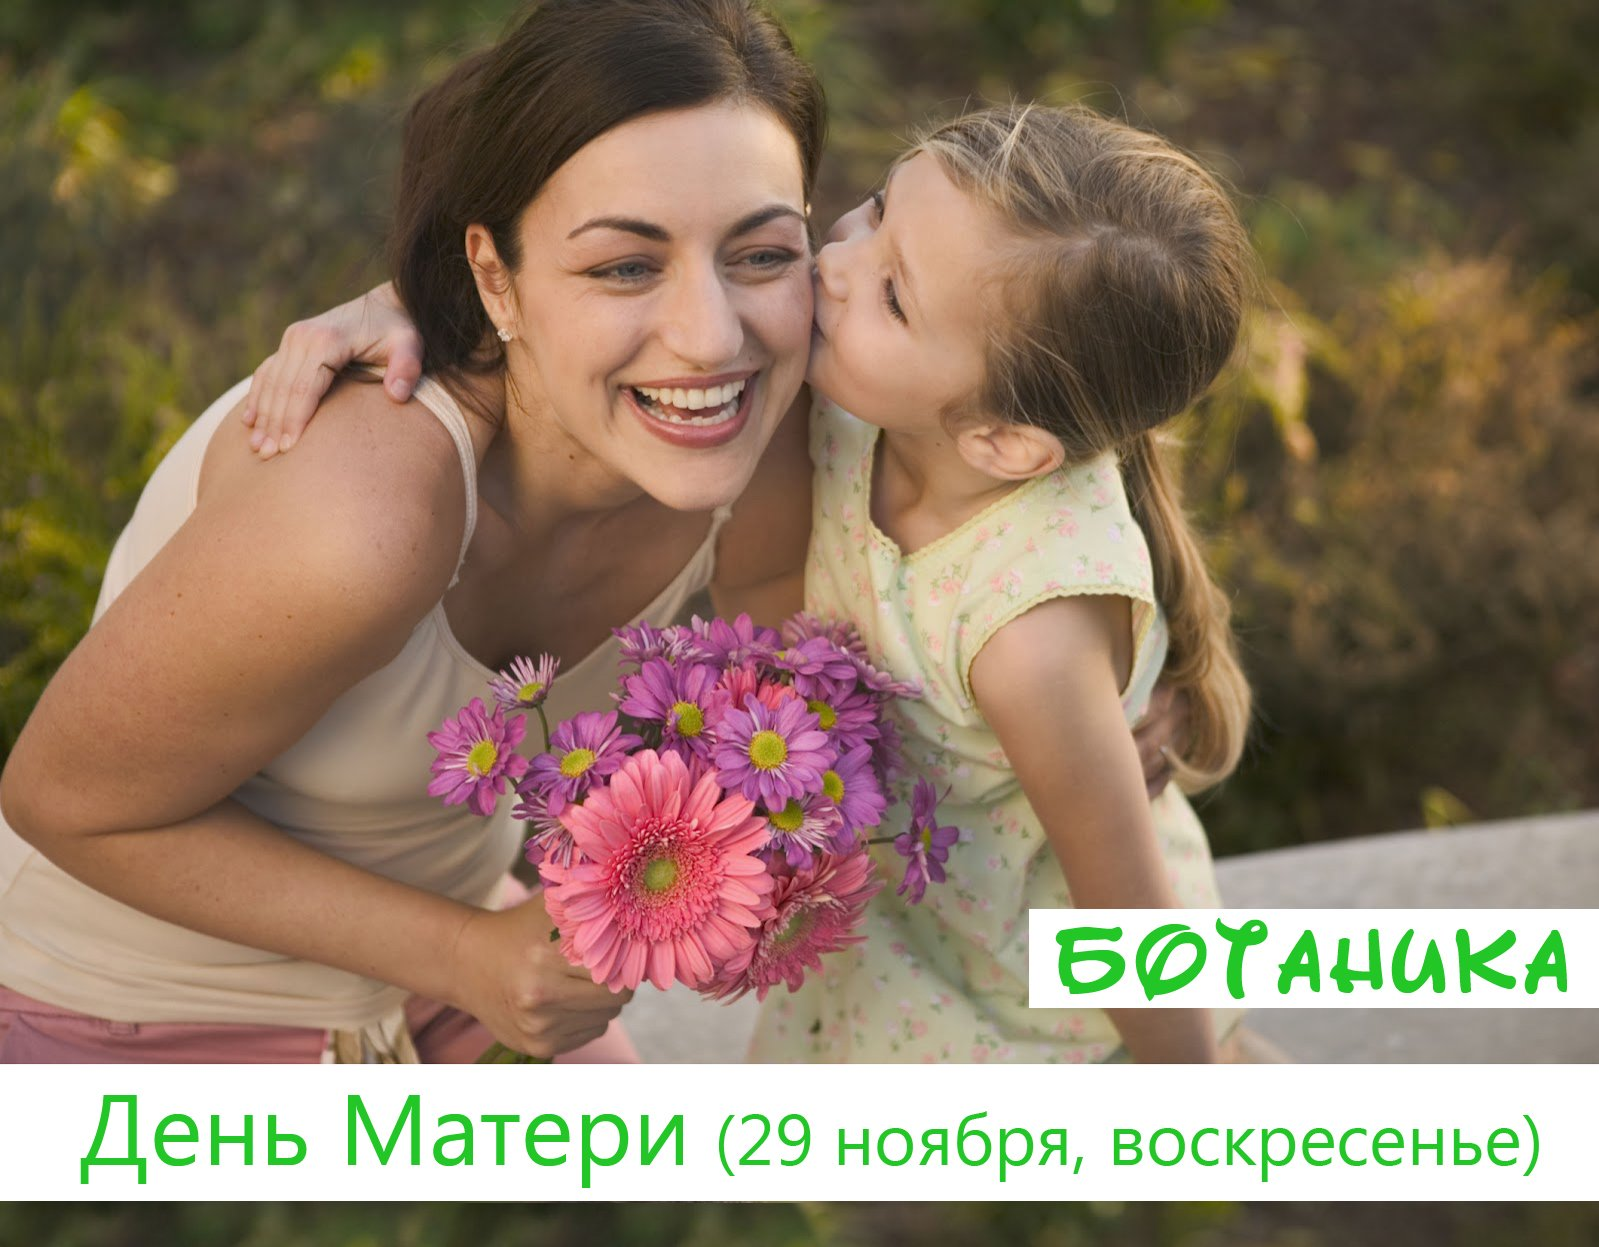 ifes mothers images - HD1200×798